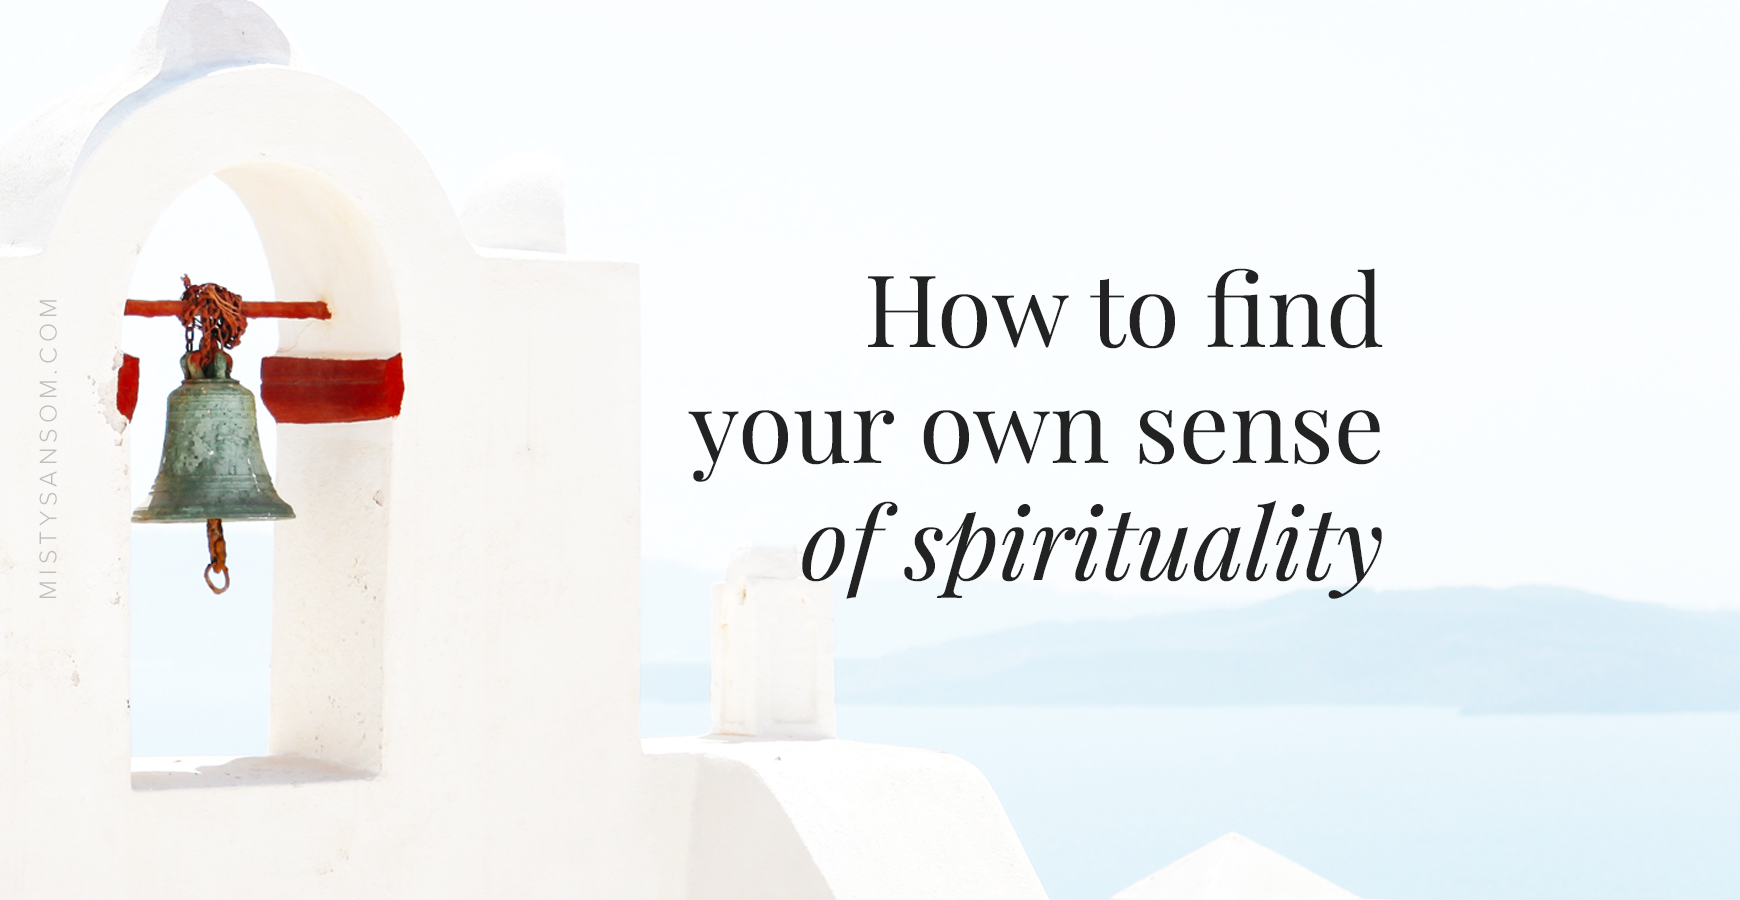 How-to-find-your-own-sense-of-spirituality.png